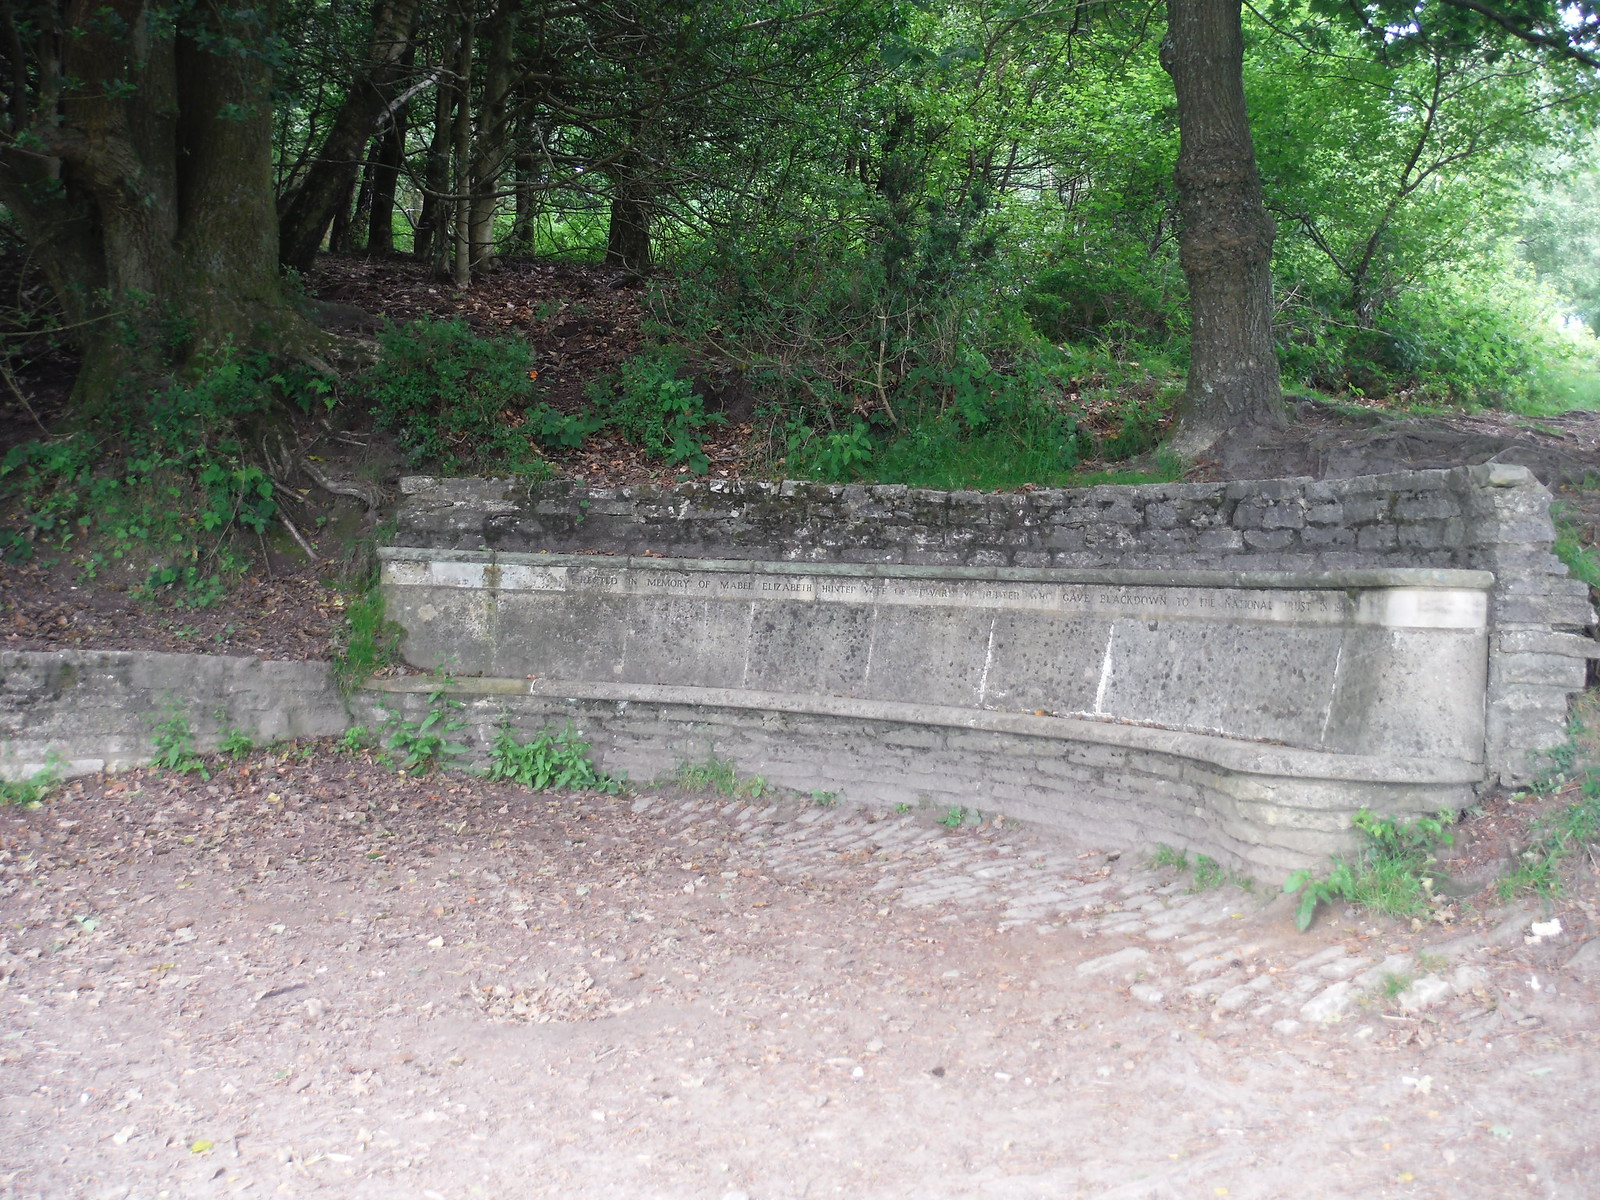 Memorial Bench at Temple of the Winds Viewpoint SWC Walk 48 Haslemere to Midhurst (via Lurgashall or Lickfold)